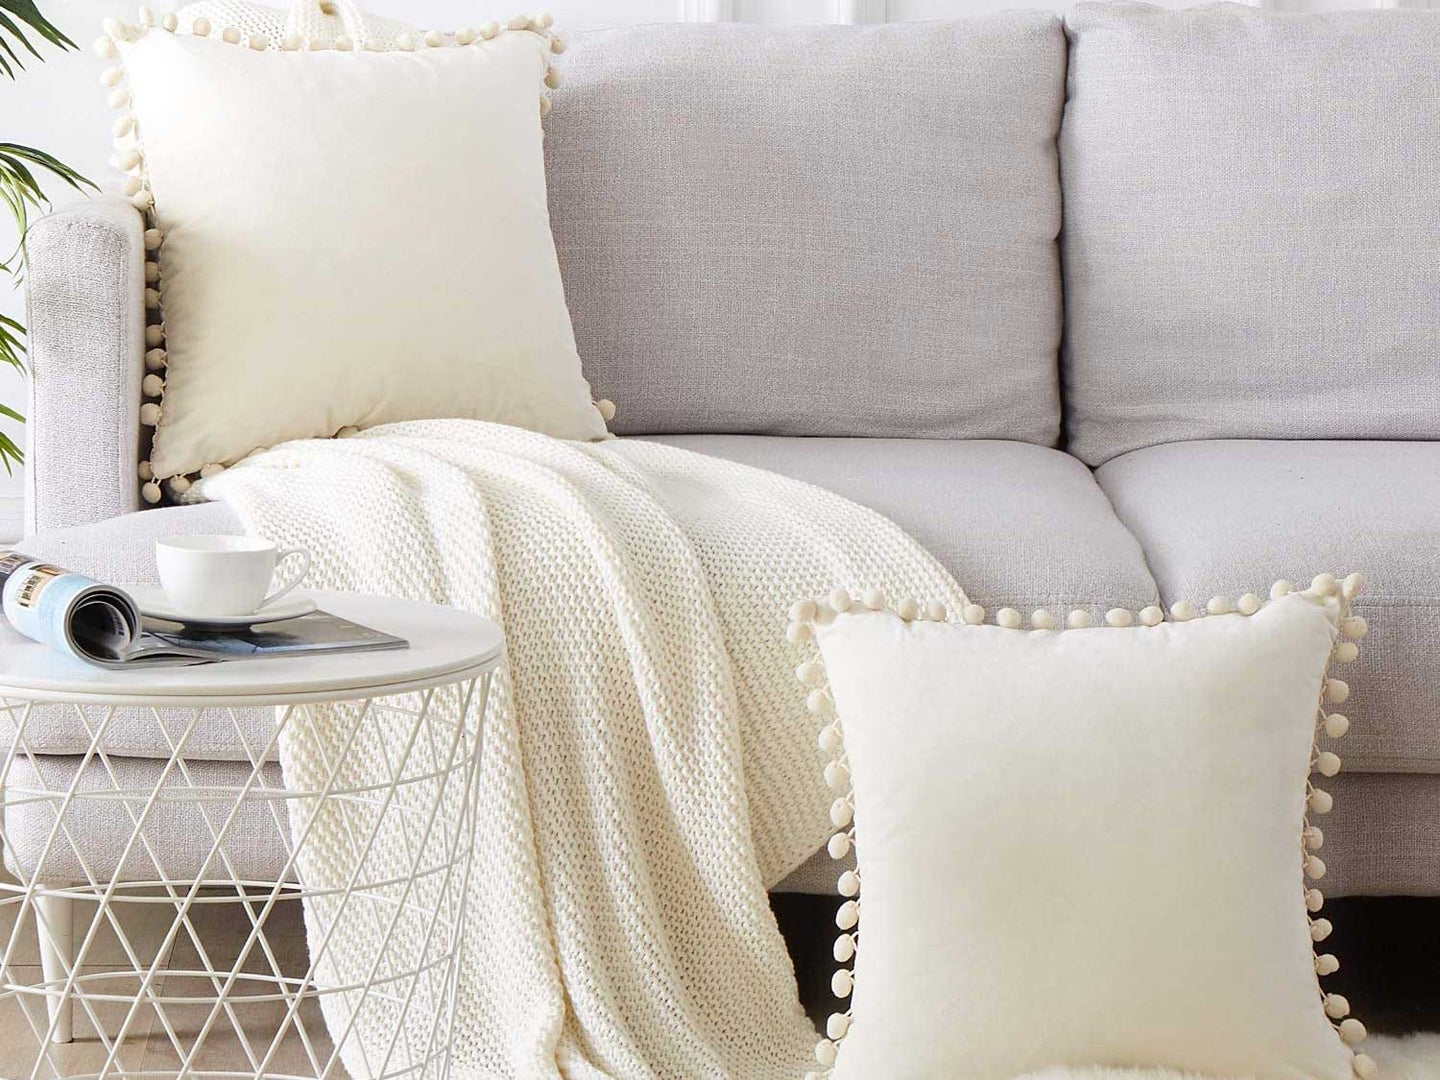 Throw pillows on couch.